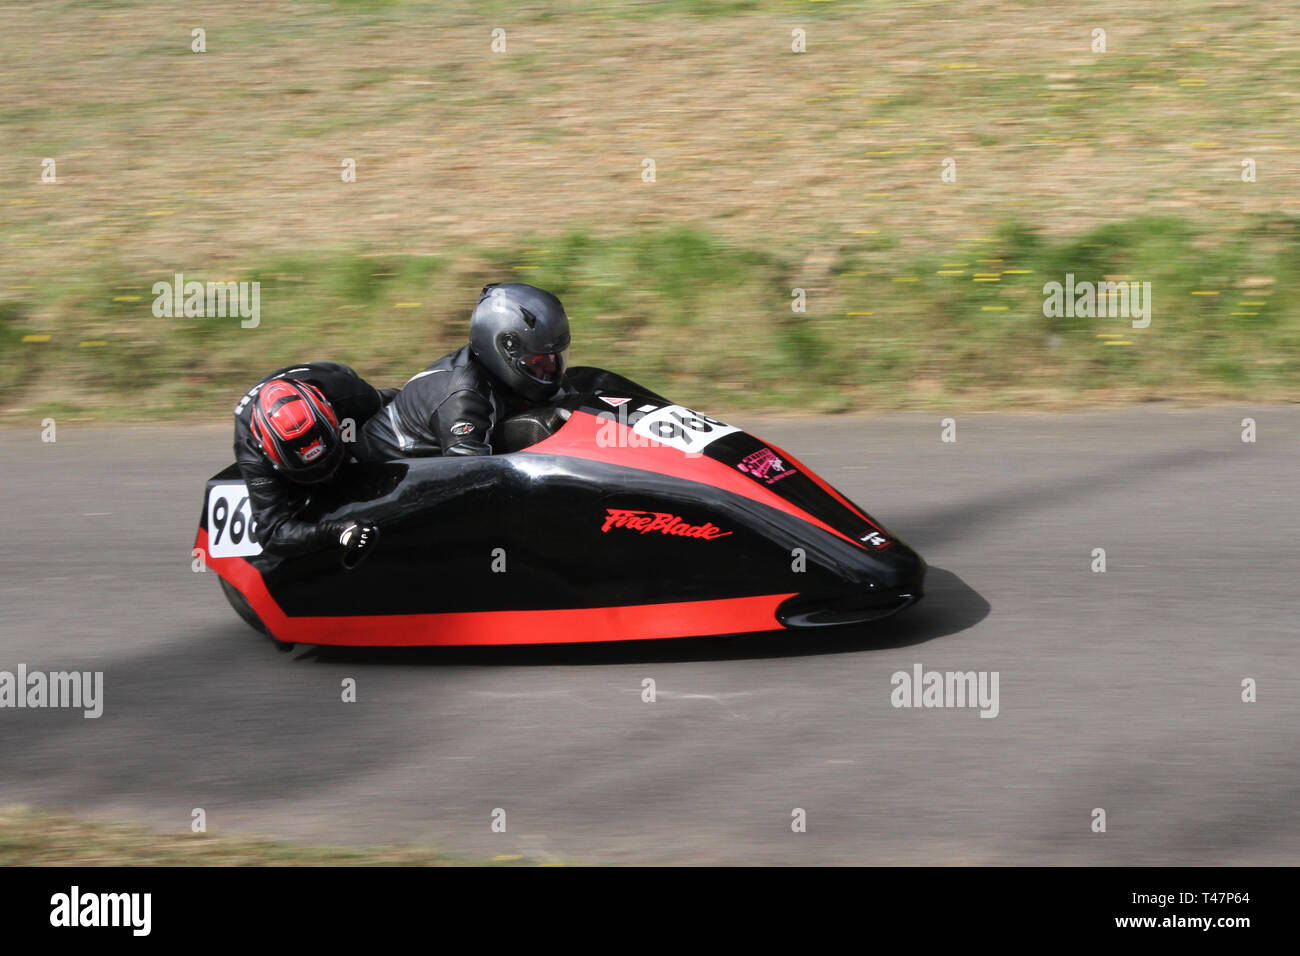 Chorley, Lancashire, Royaume-Uni. Avril, 2019. Hoghton Tower 43ème Sprint Moto. Rider 966 Terry Truman & Rachael Calvery une circonscription de Nottingham 1996 919cc à trois roues moderne Honday moto side-car F2. Photo Stock